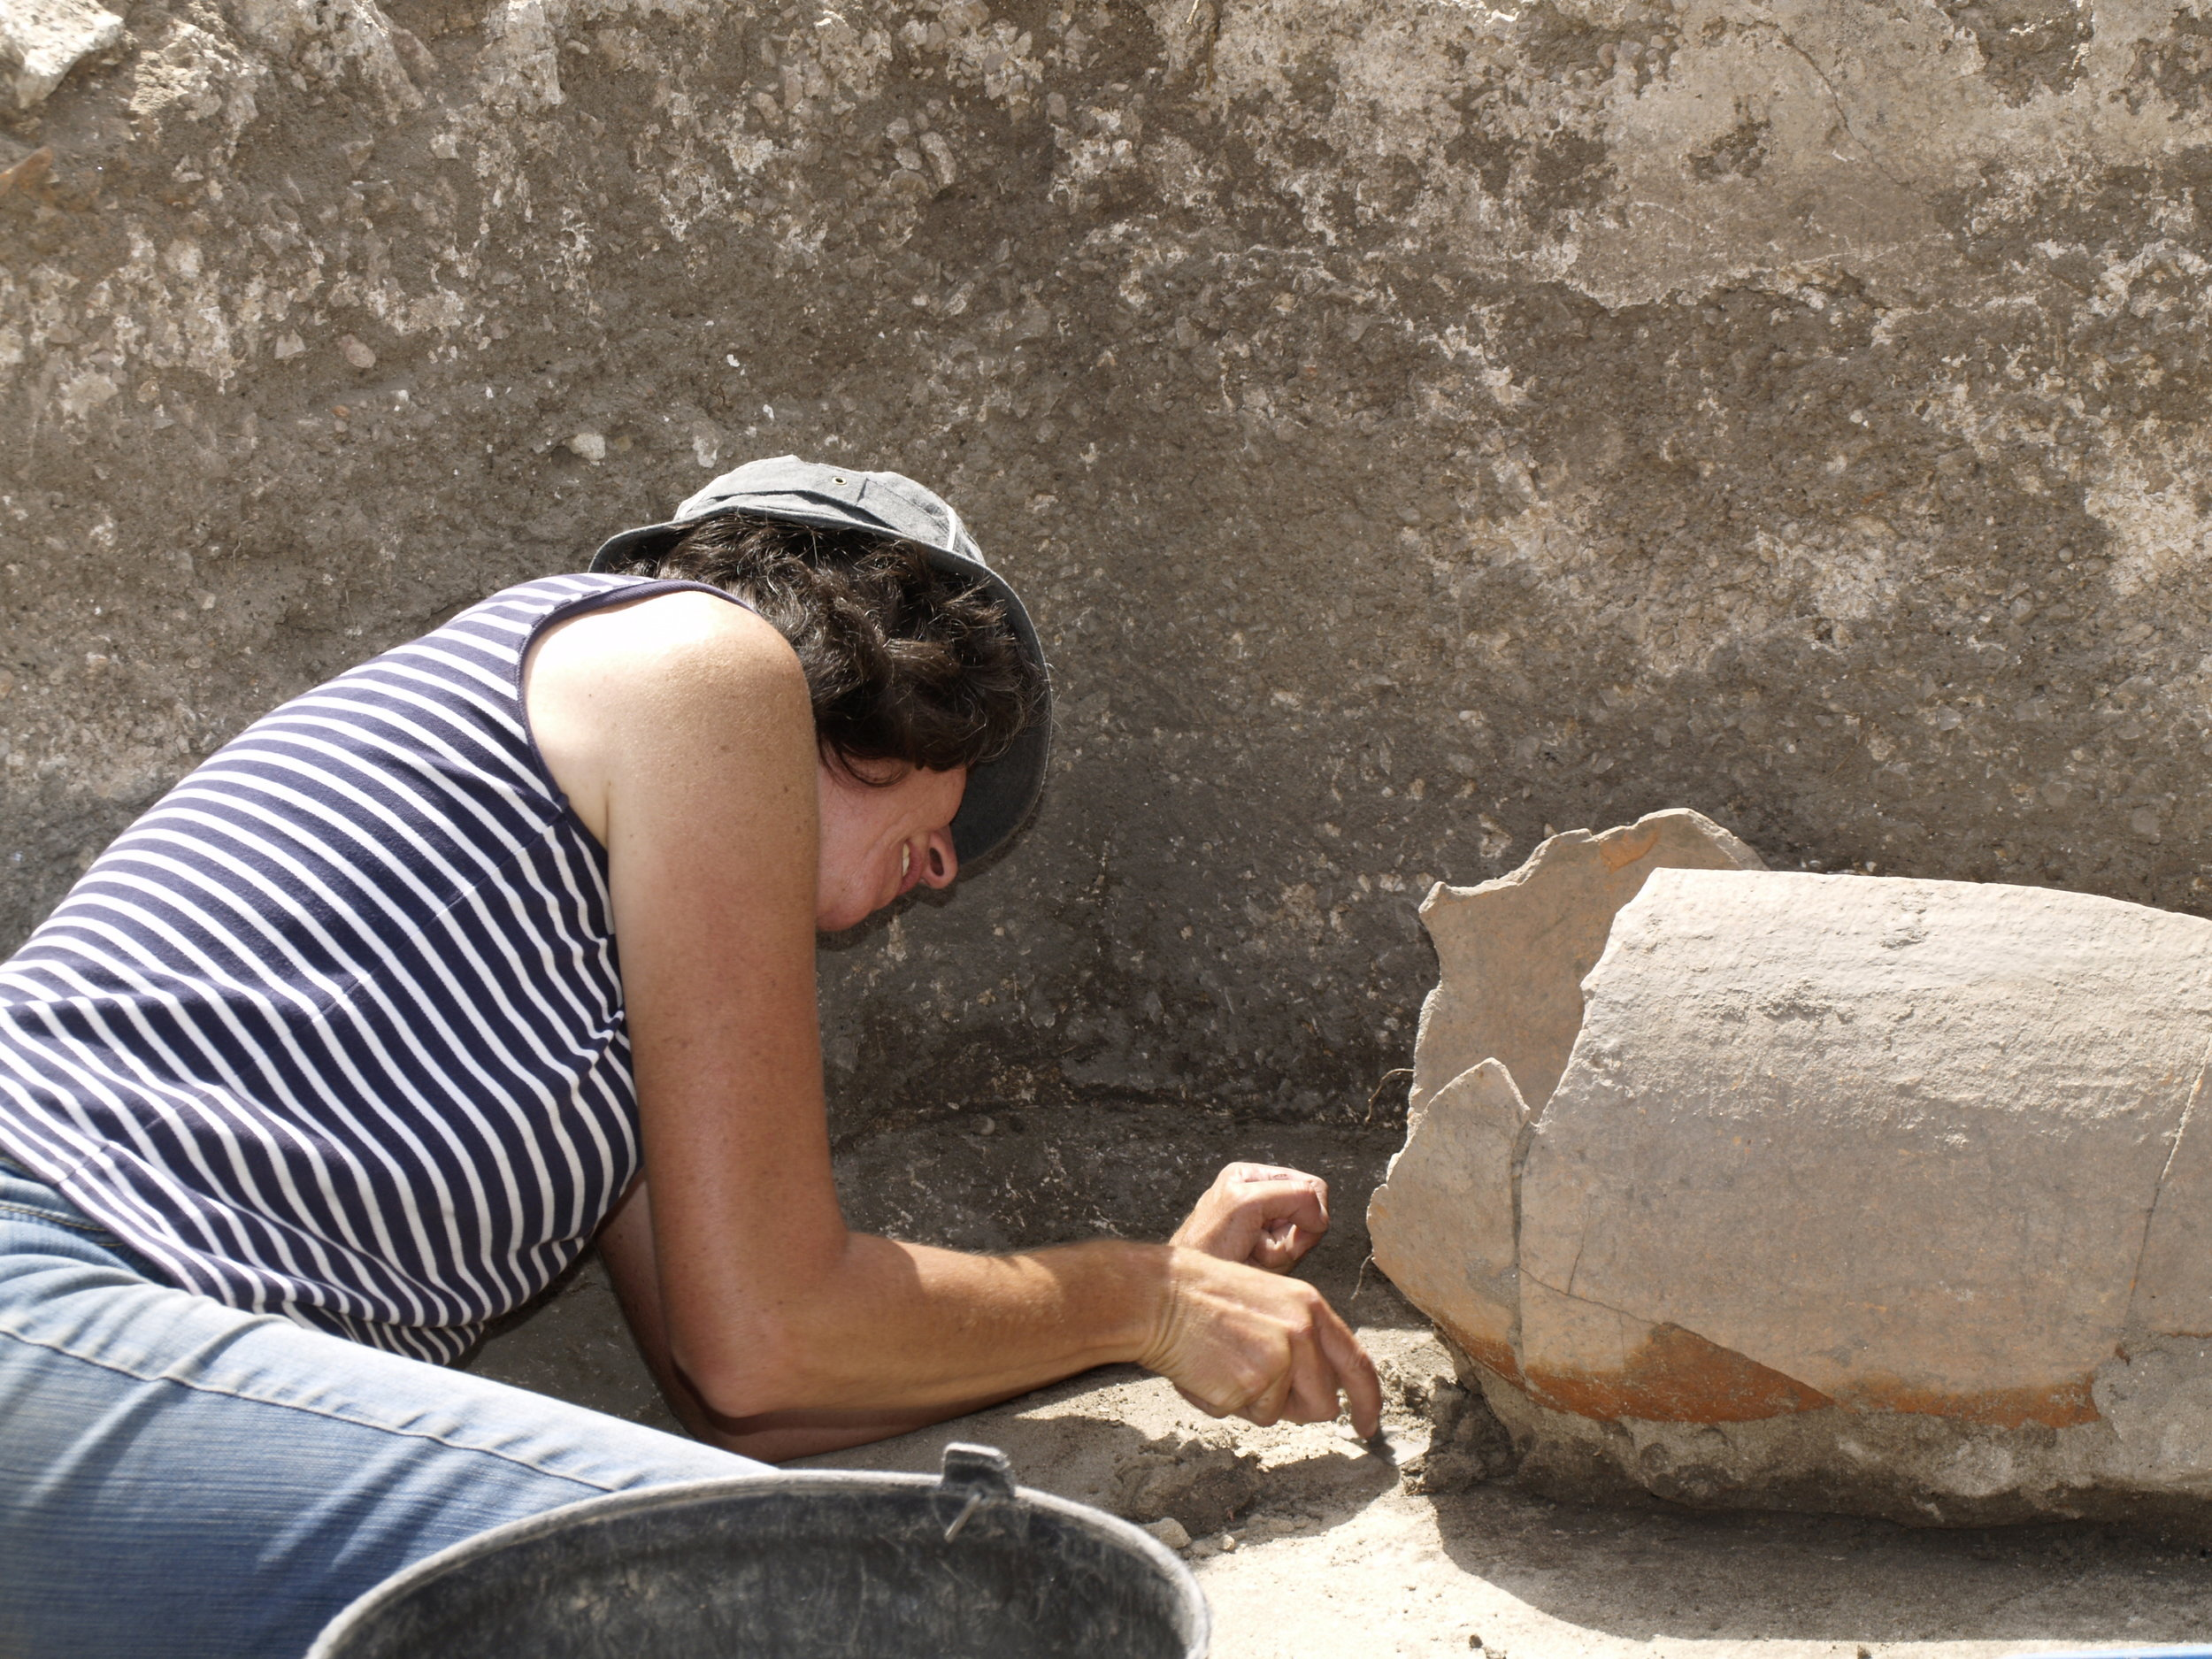 Inês examining a new discovery among the Roman ruins.